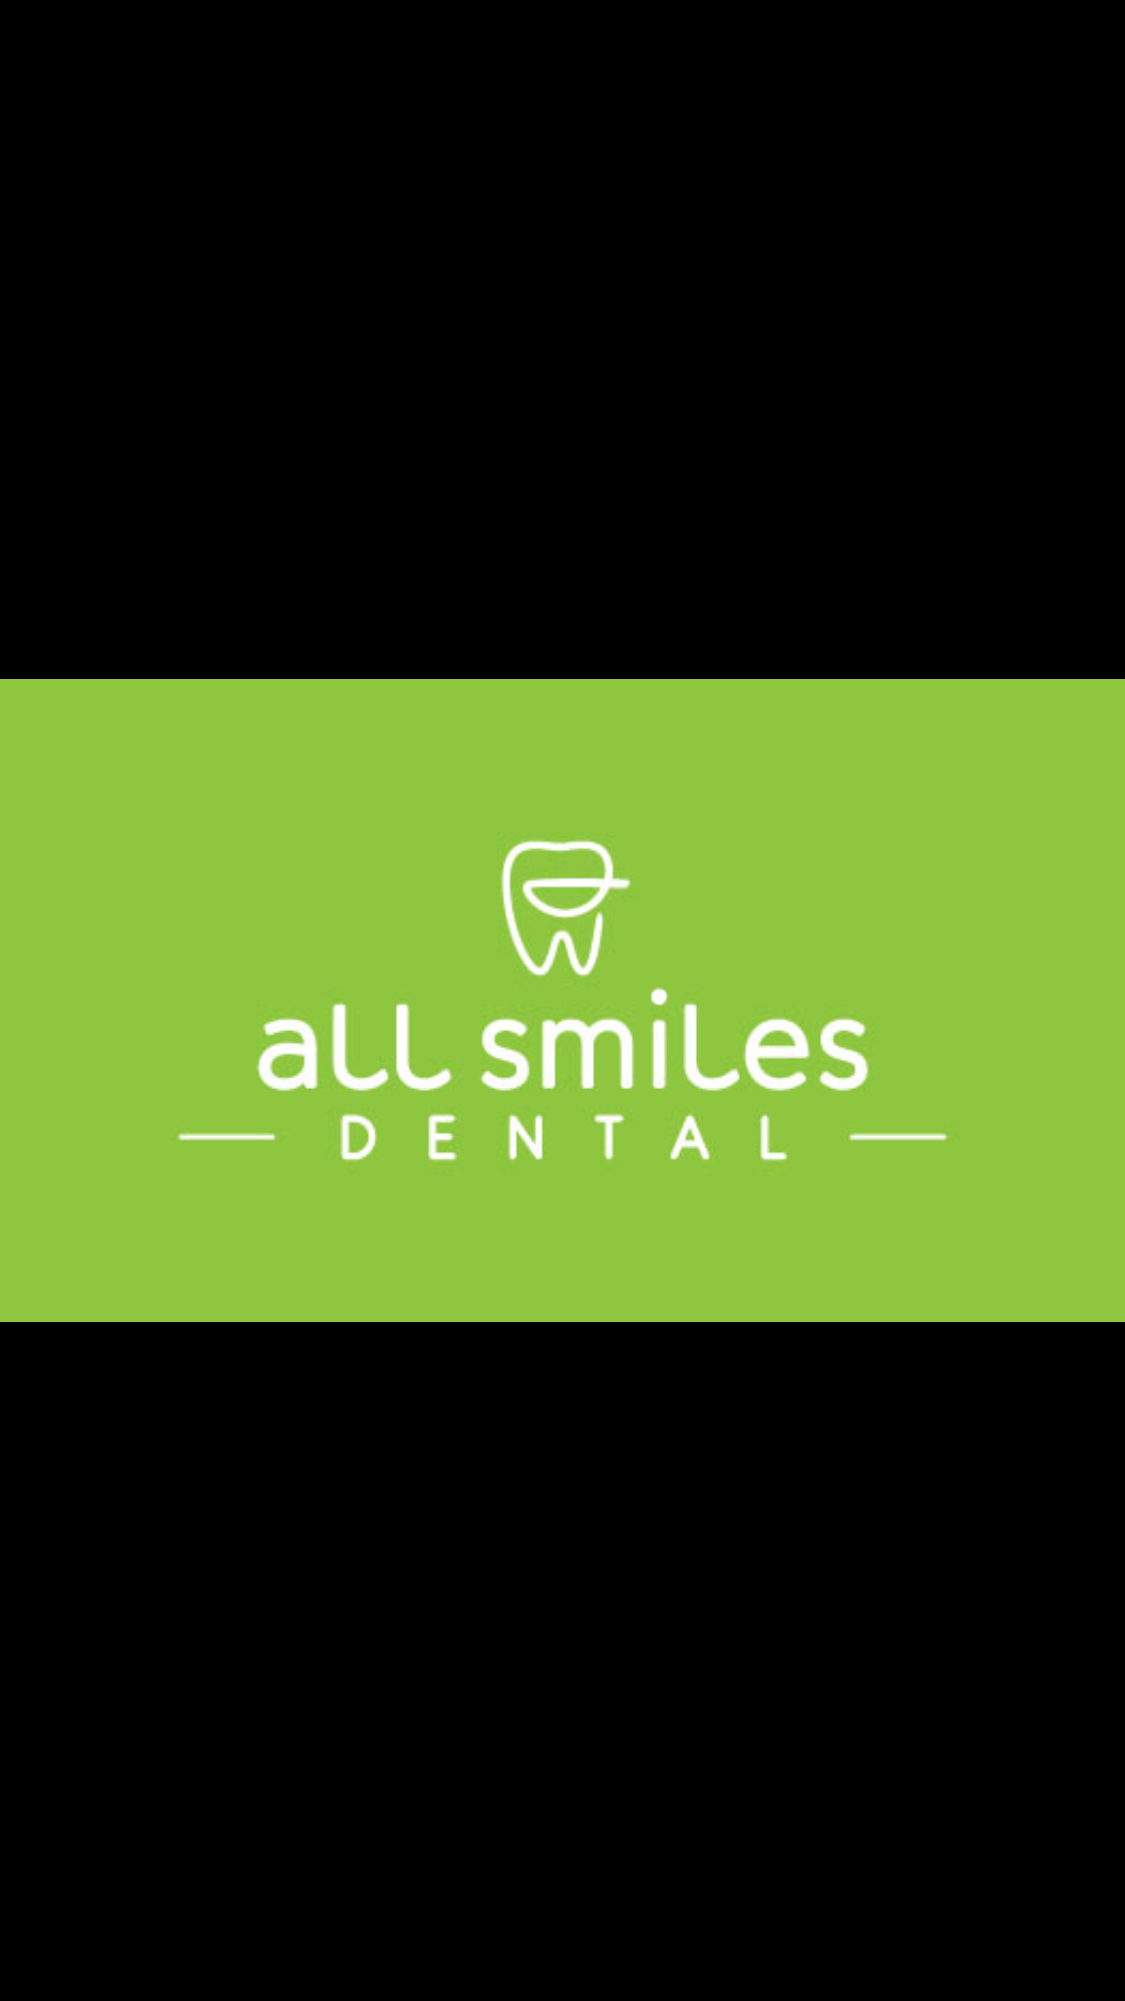 All Smiles Dental located at 5775 Victoria Drive, Vancouver, BC, V5P 3W5